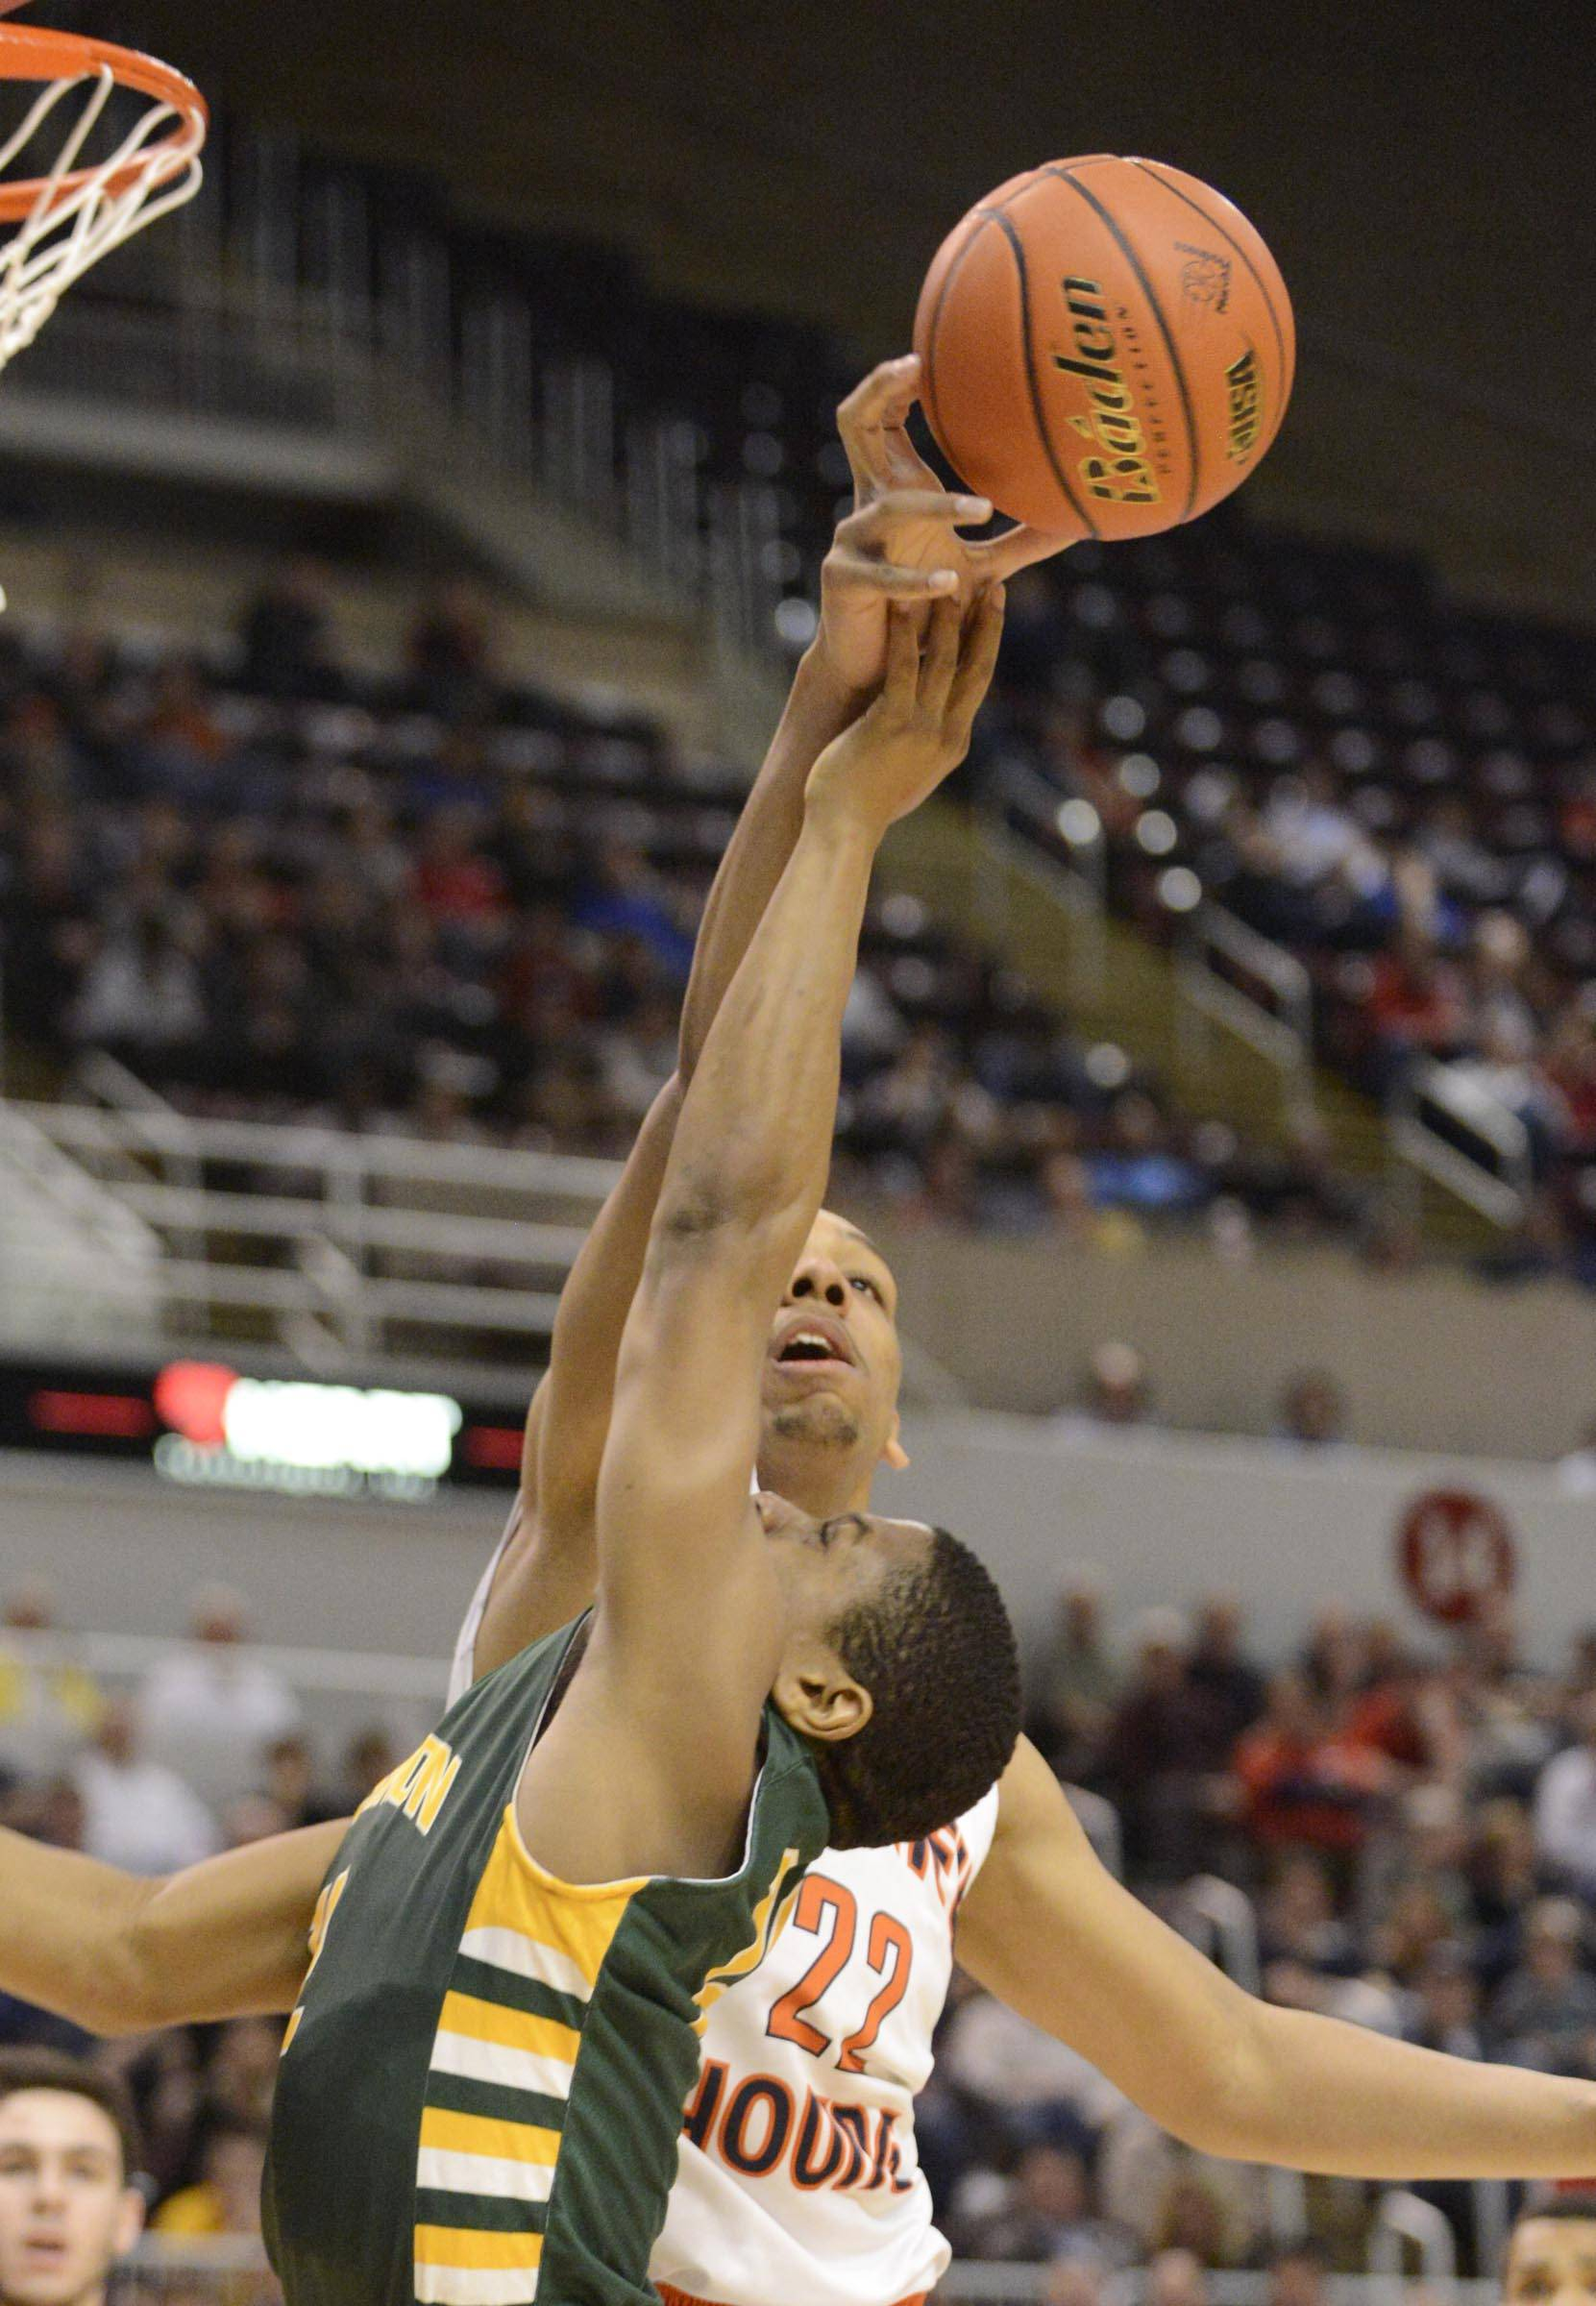 Stevenson's Matthew Johnson is blocked by Whitney Young's Jahlil Okafor in the Class 4A state semifinals at Carver Arena in Peoria on Friday.